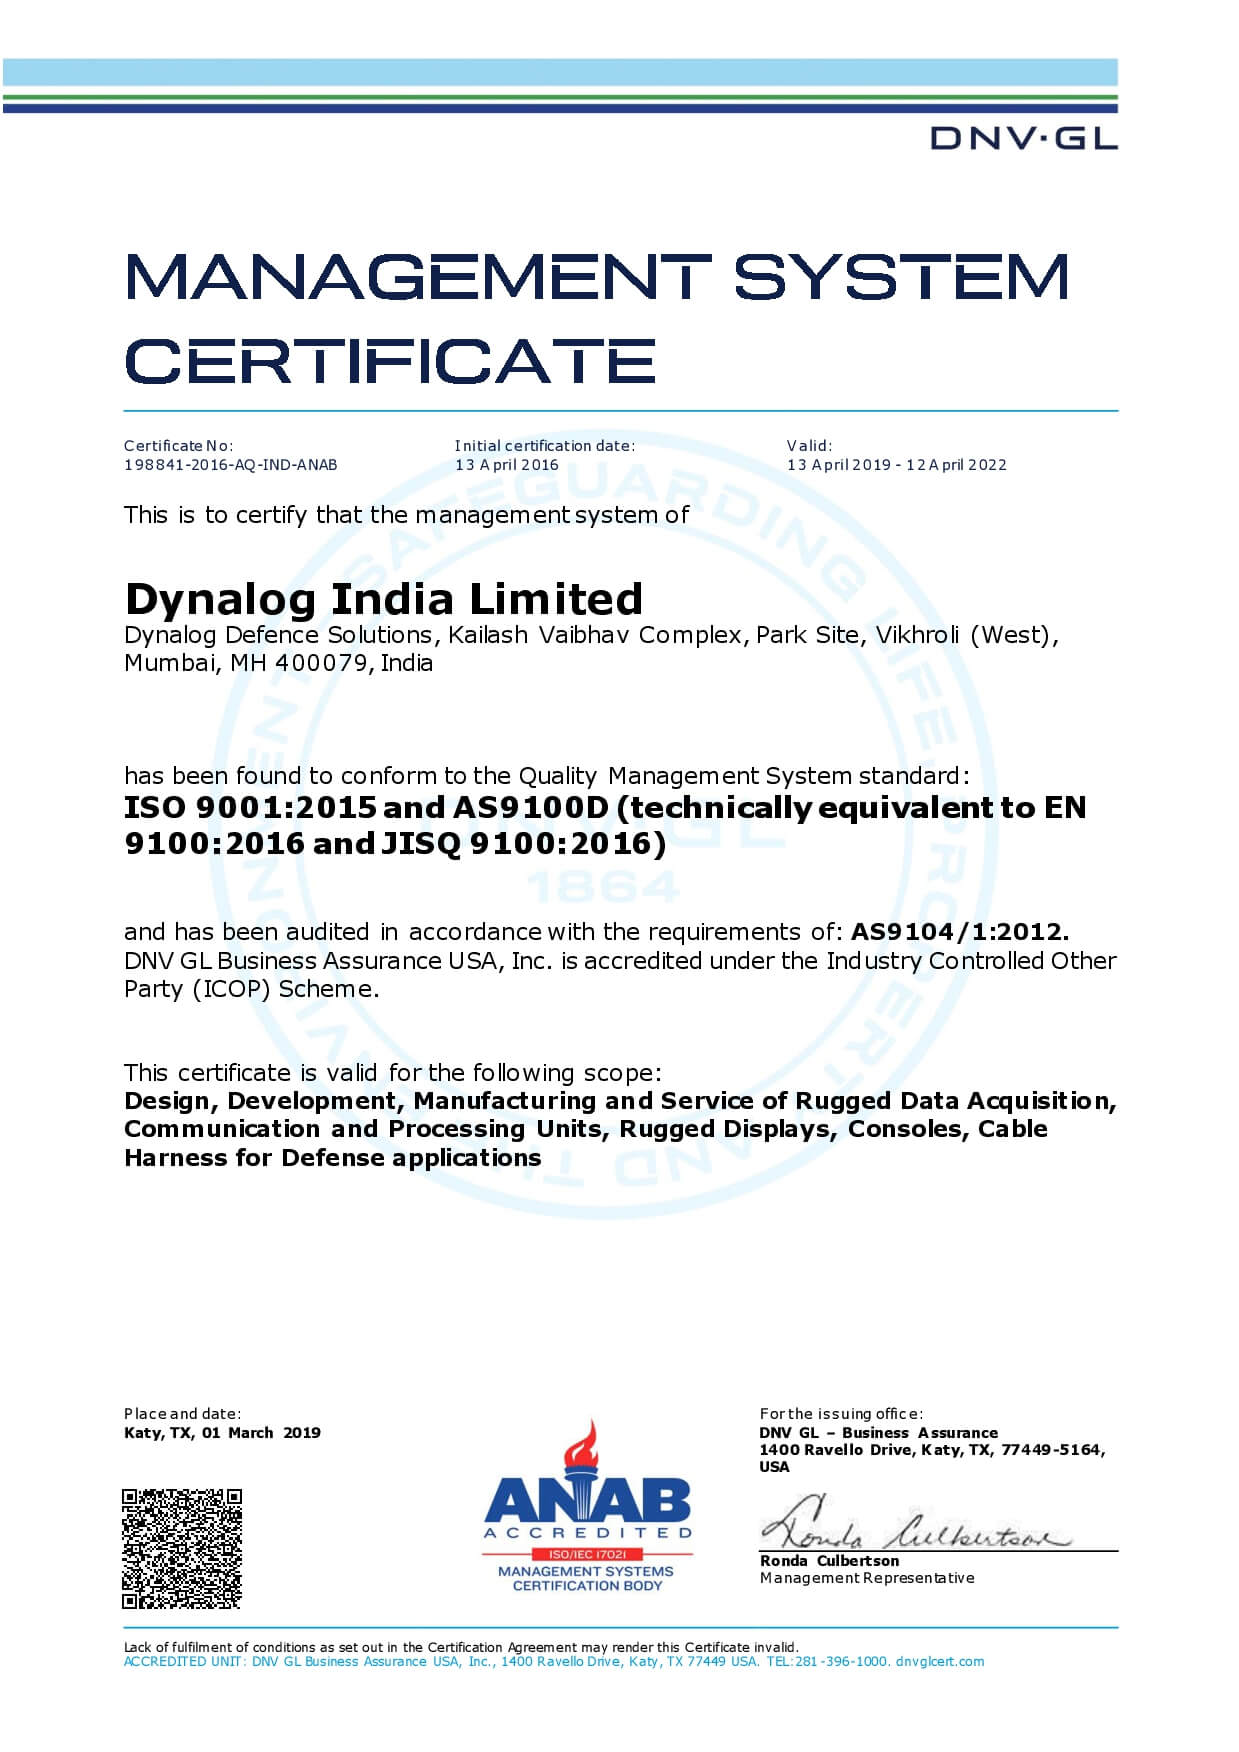 ISO-9001:2015 and AS9100D Certificate